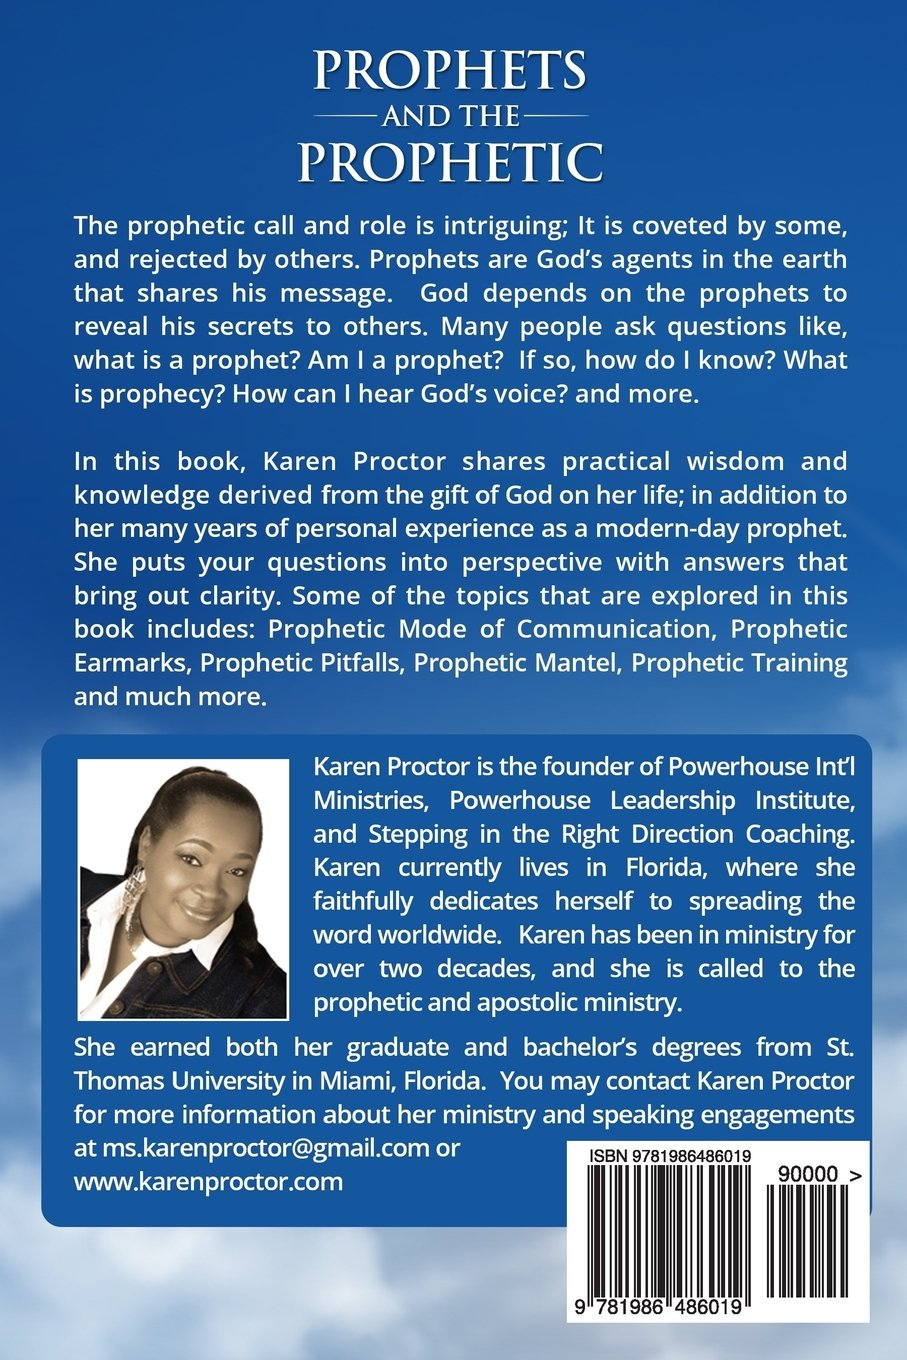 Prophets and the Prophetic: Fulfilling the Call: Karen